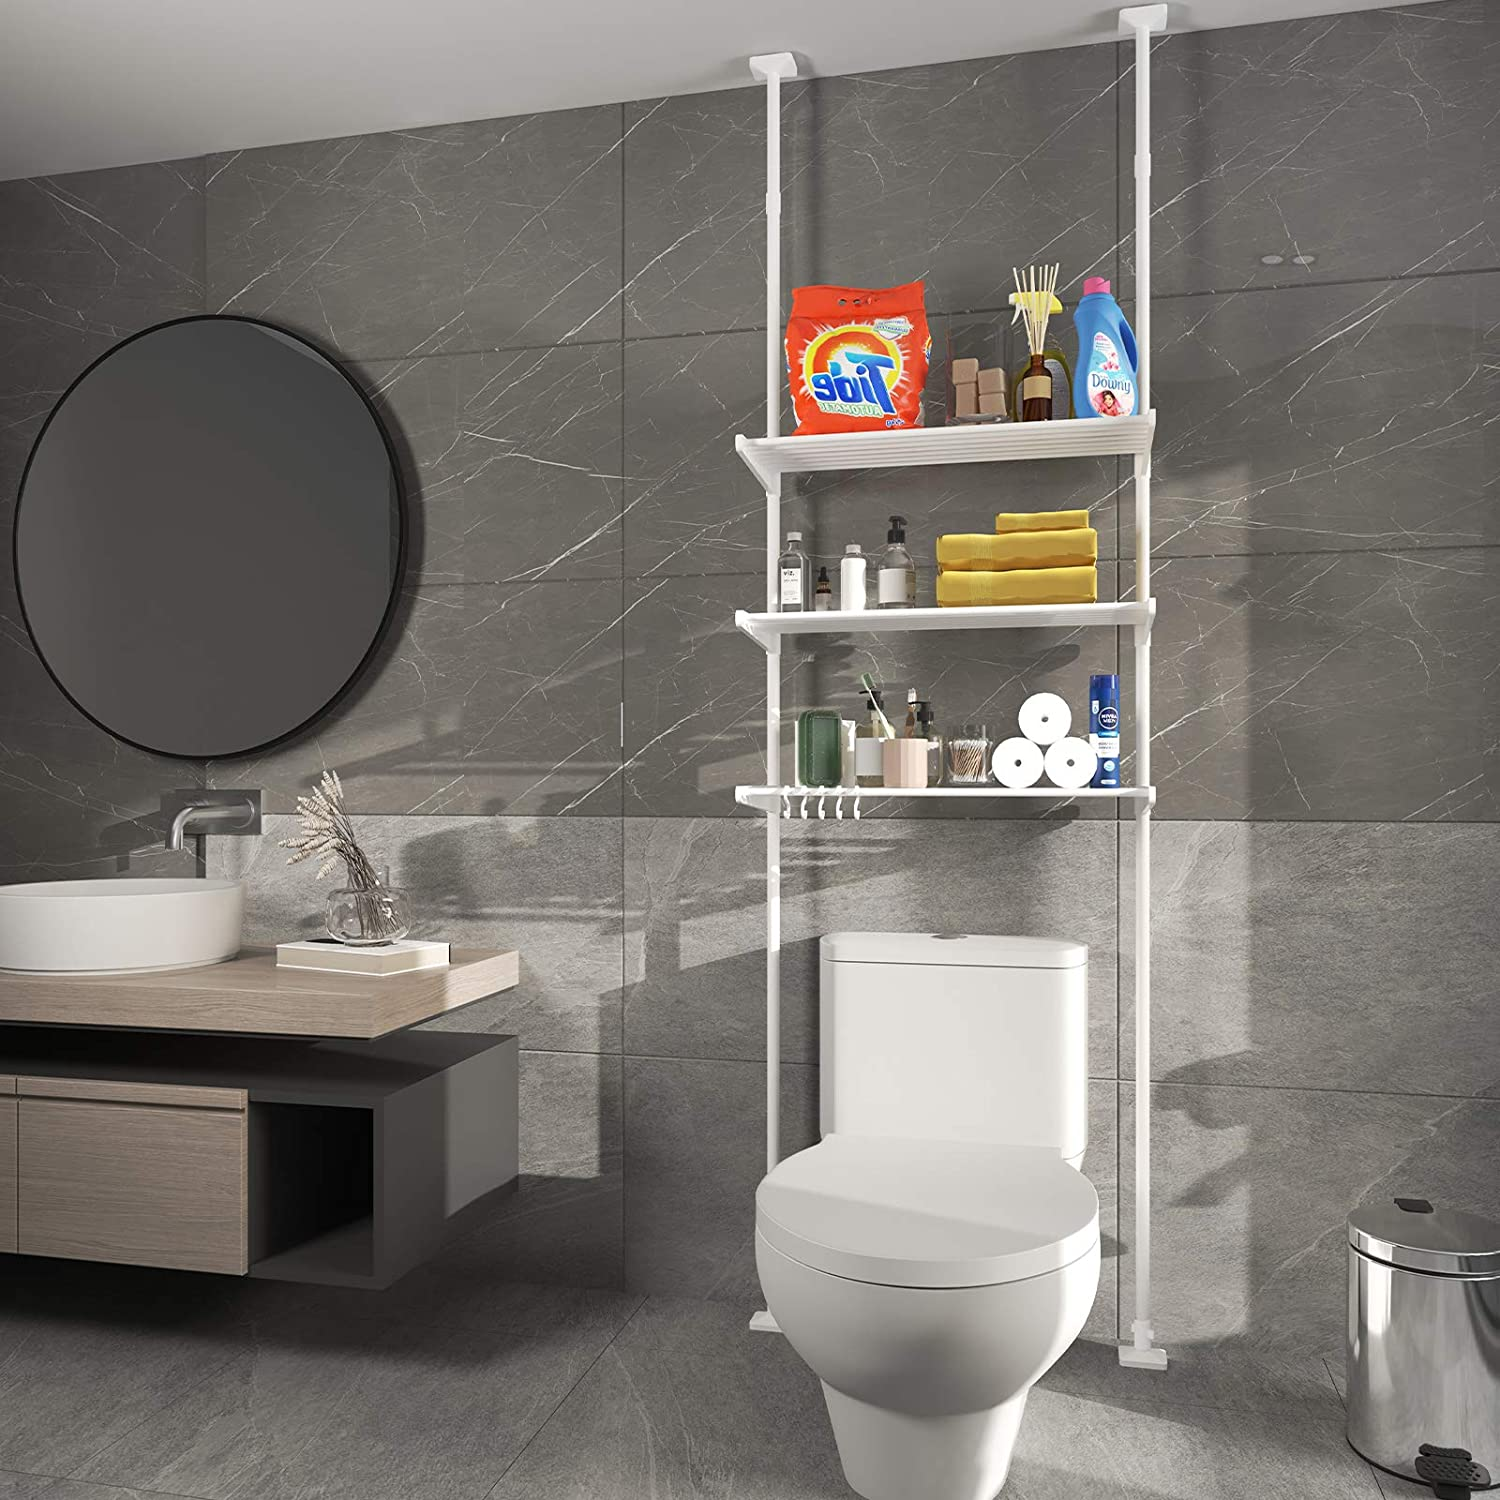 Three-layer adjustable shelf hooked from ceiling to wall in a gray tone bathroom with round mirror